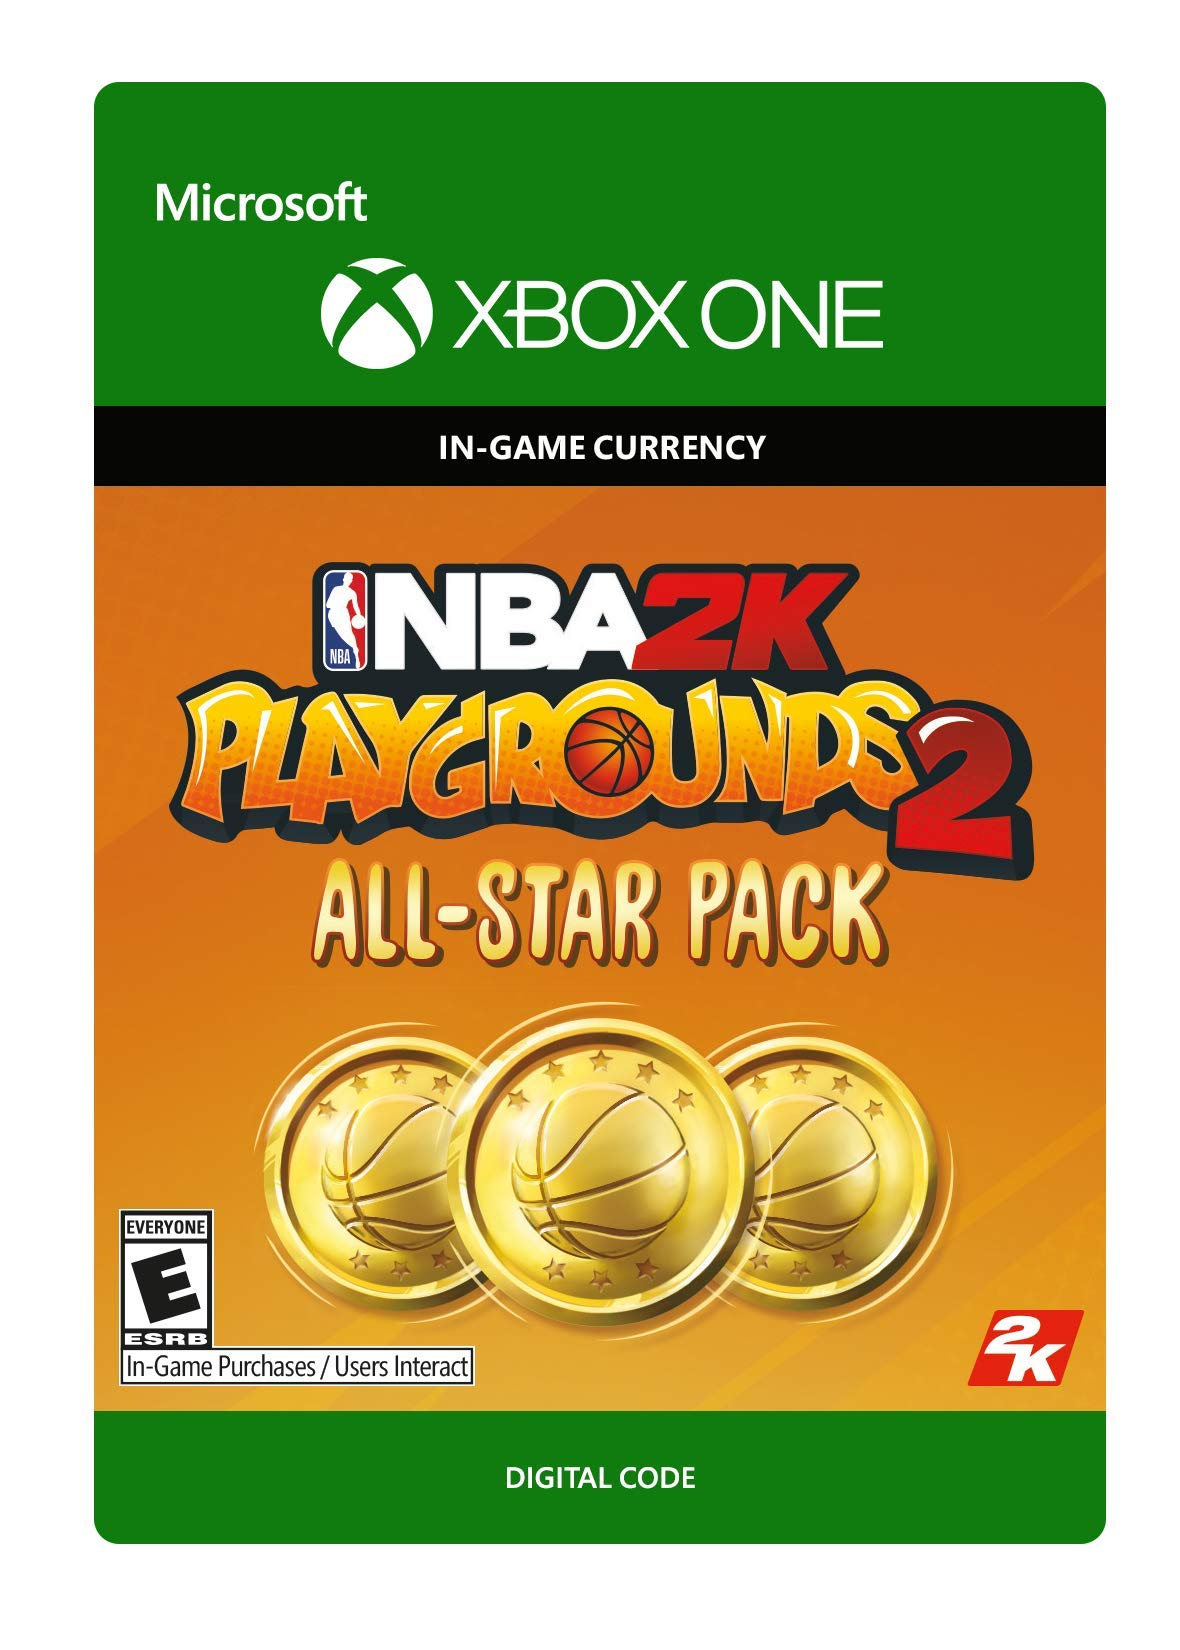 NBA 2K Playgrounds 2 All Star Pack - 16,000 VC Xbox One [Digital Code]